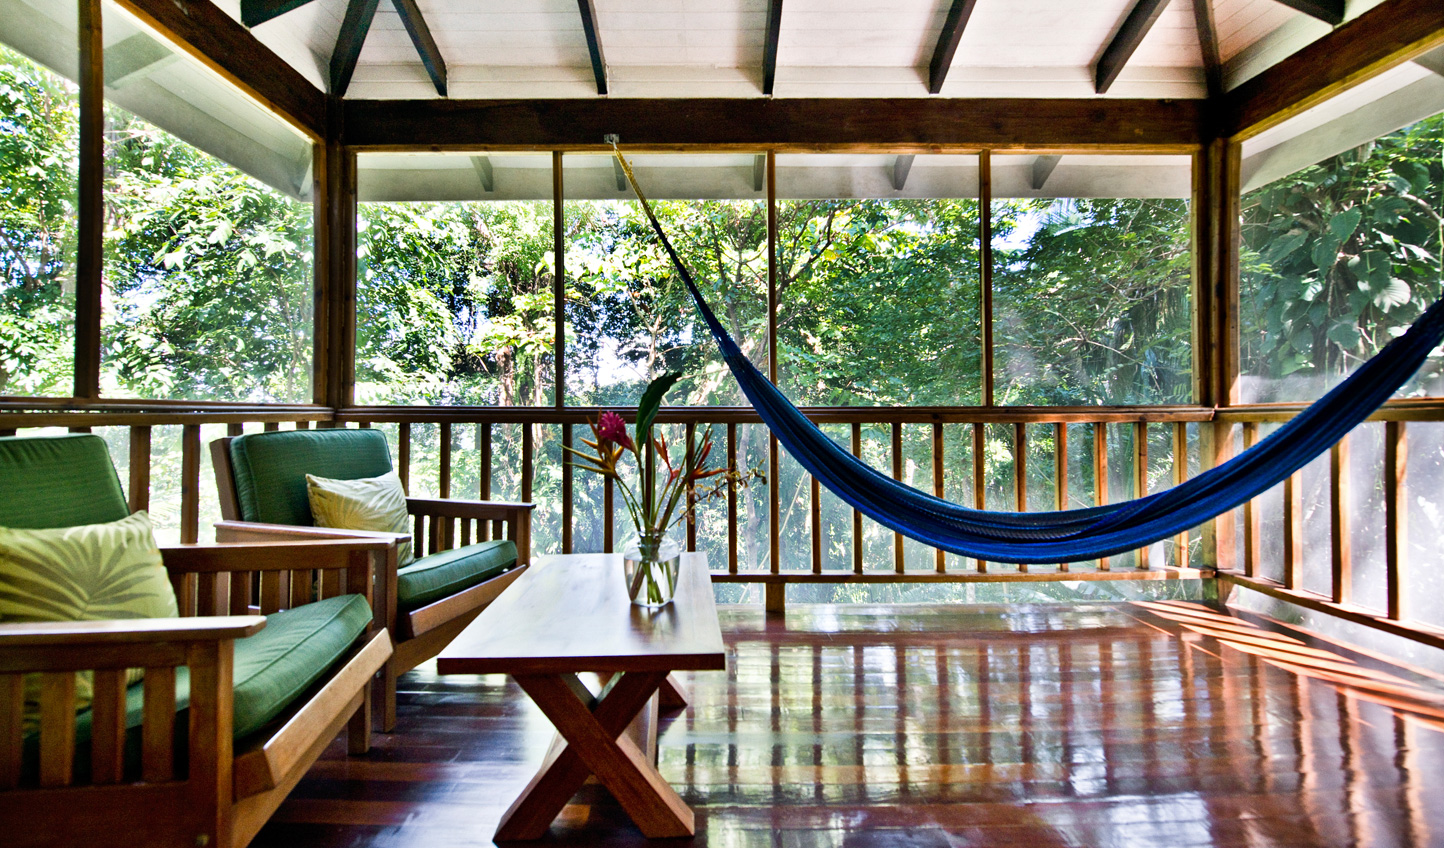 Relax on your private deck and listen to the sounds of the jungle